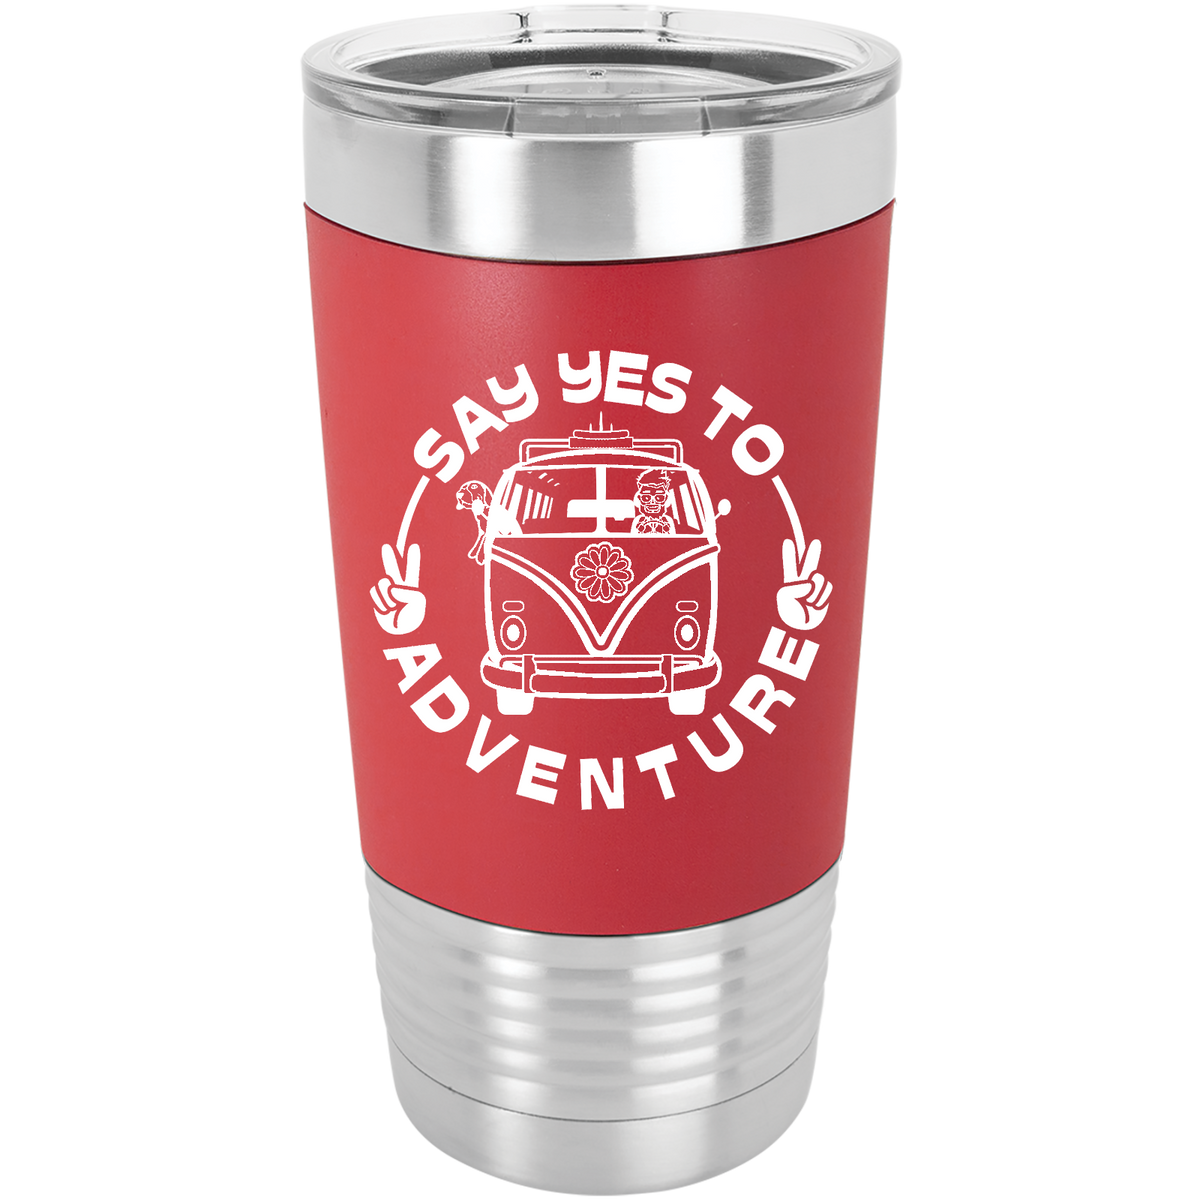 Say Yes To Adventure - 20oz. Silicone Grip Tumbler with Clear Lid